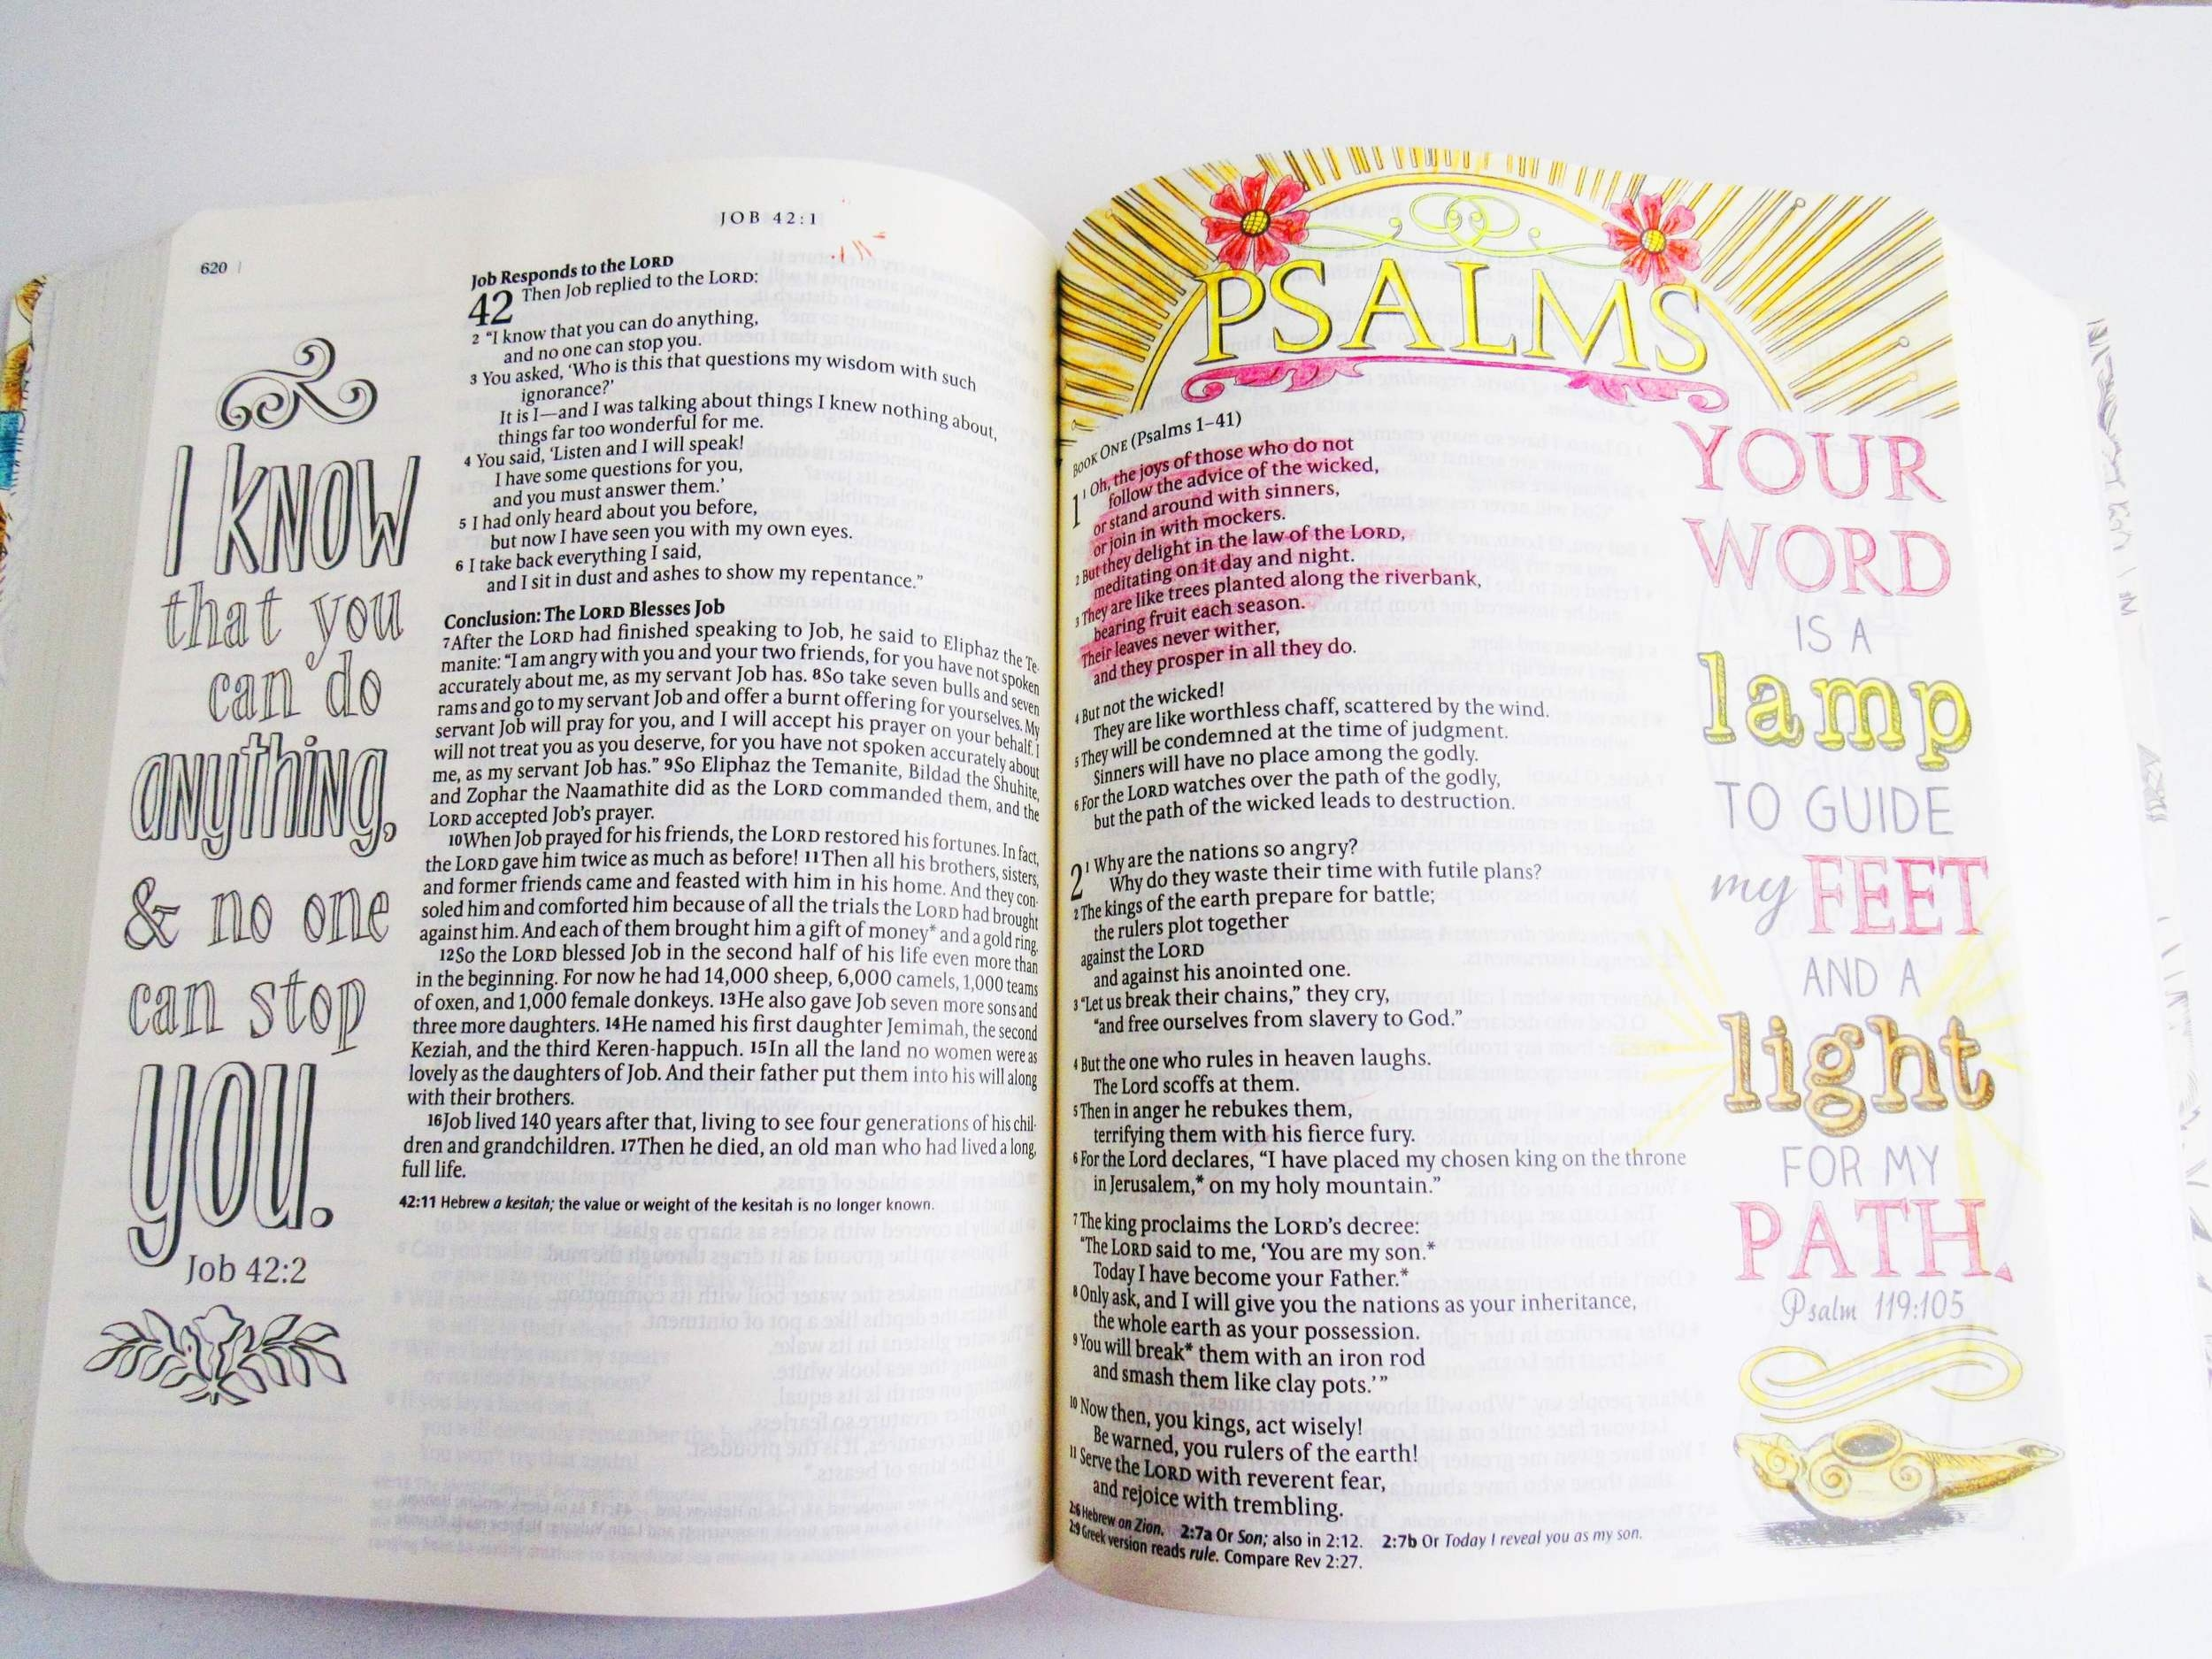 Each chapter of the INSPIRE BIBLE has a beautiful design along with the title. Here, I colored the first page of Psalms, but the page on the left is an example of the over 400 images you can color in your Bible.